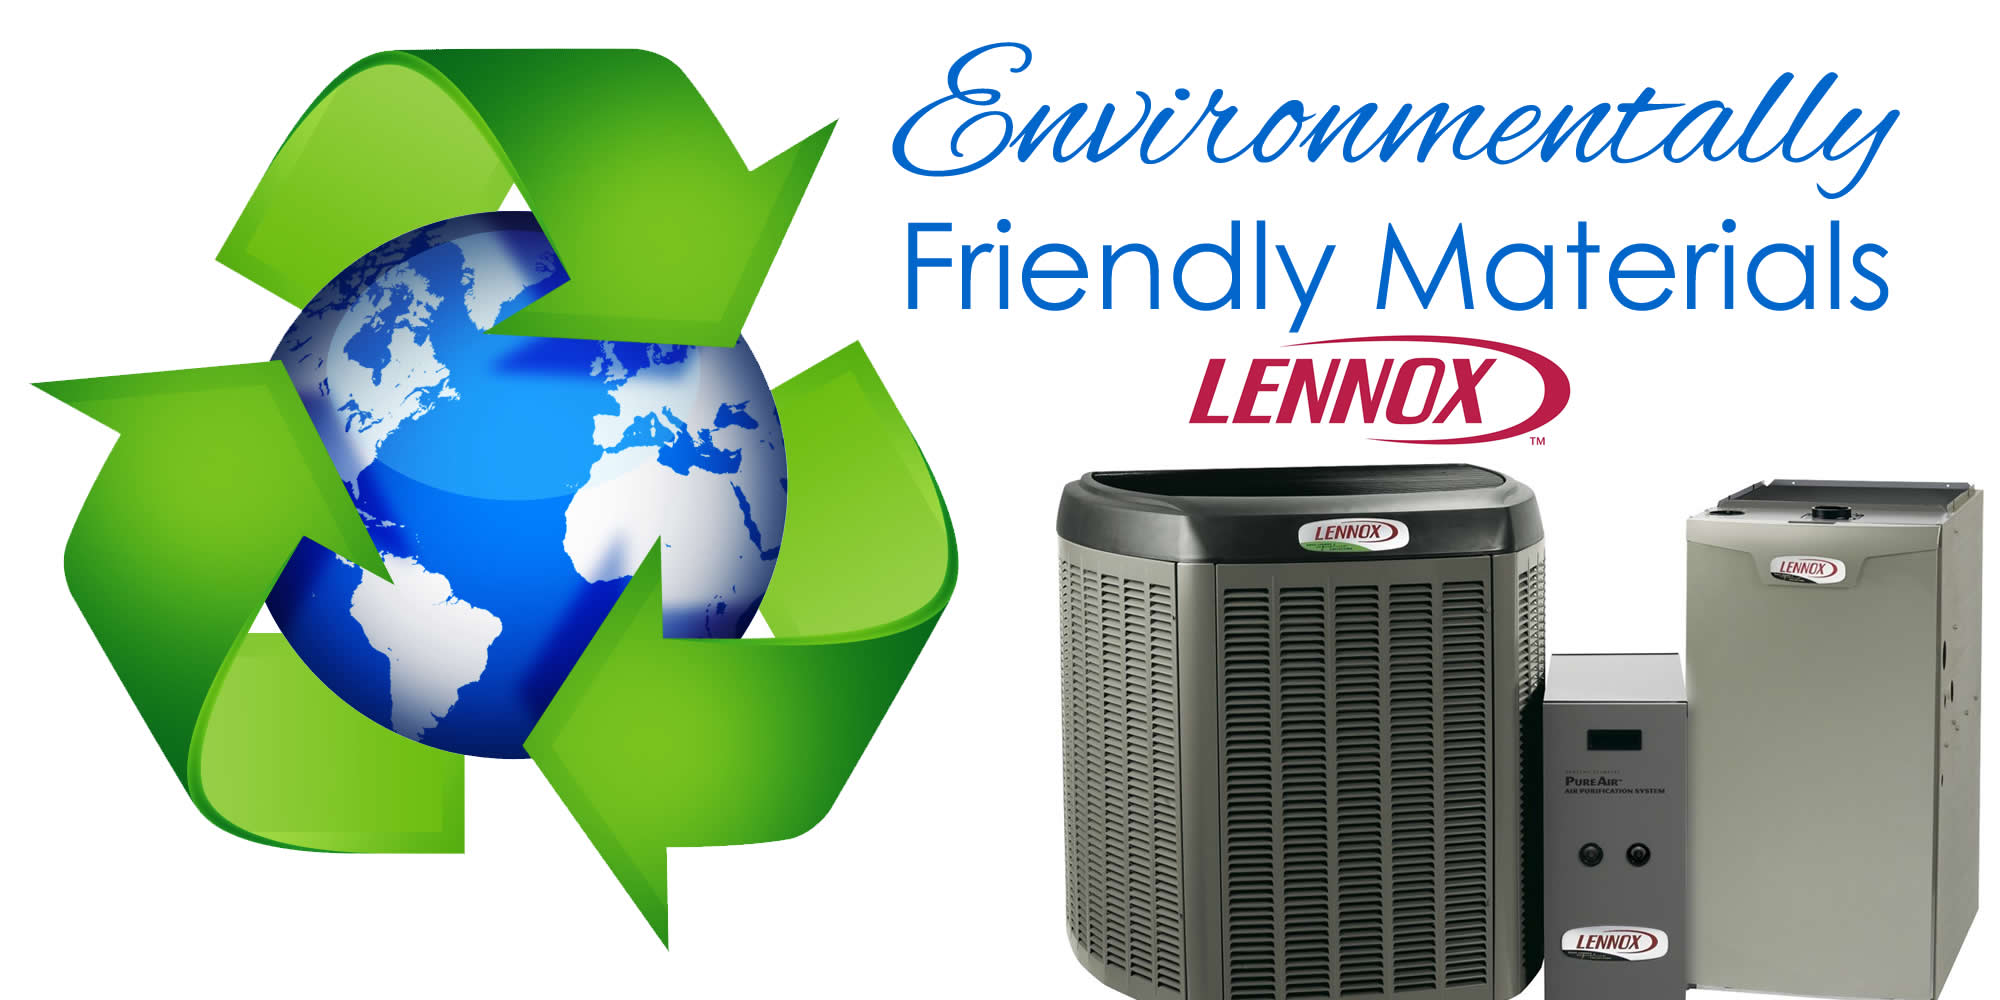 Licensed Lennox Dealer